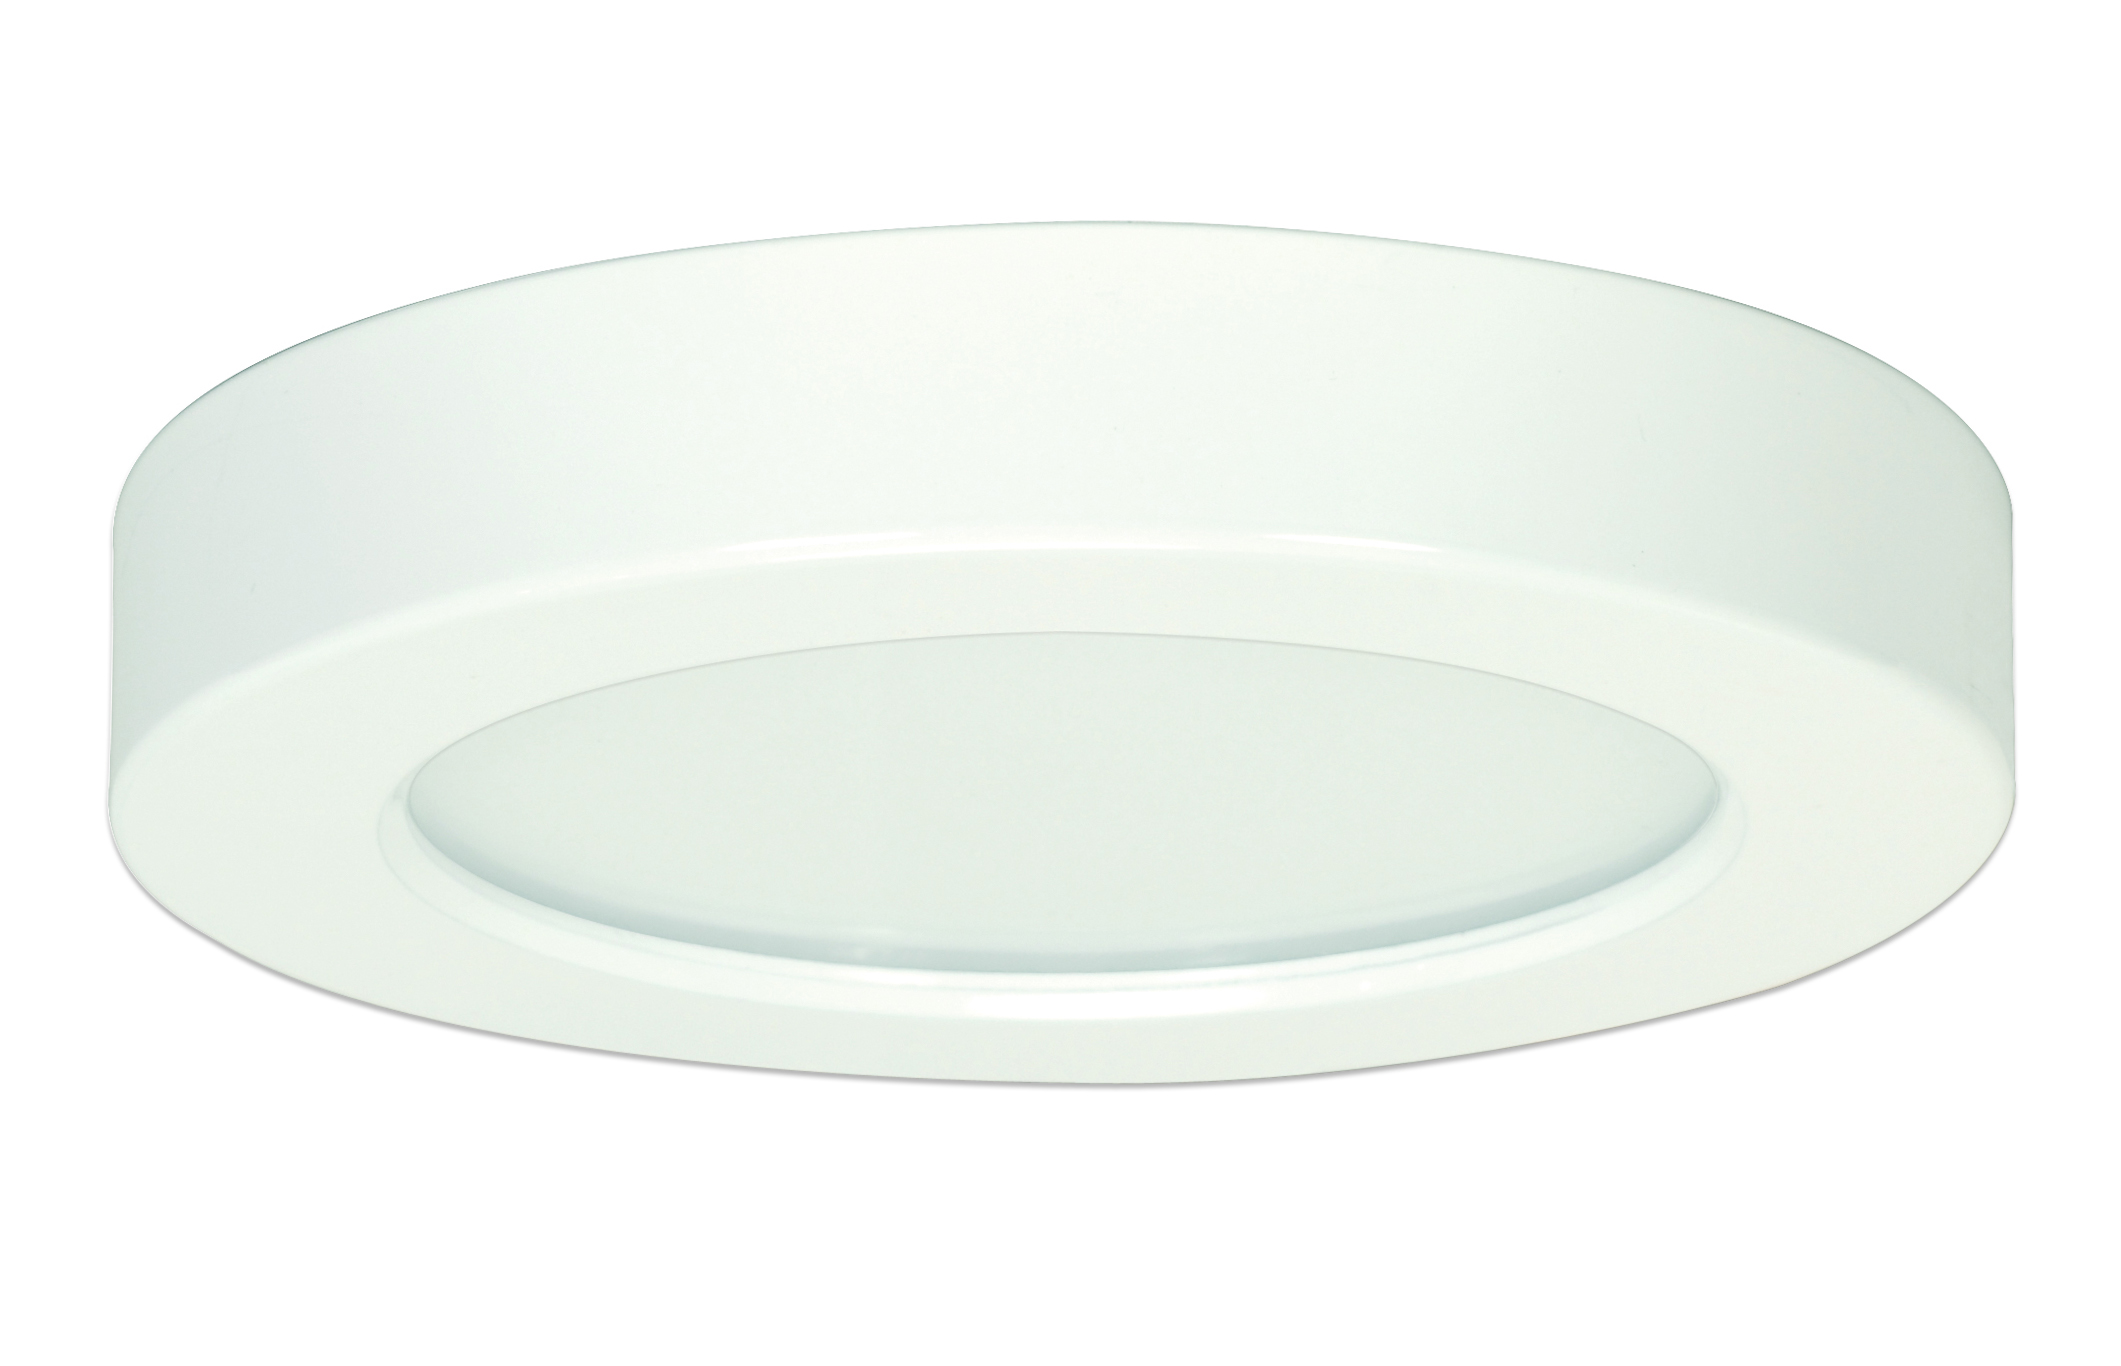 Satco,S9320,SATCO® Blink Dimmable Round LED Fixture, LED Lamp, 120 VAC, White Housing